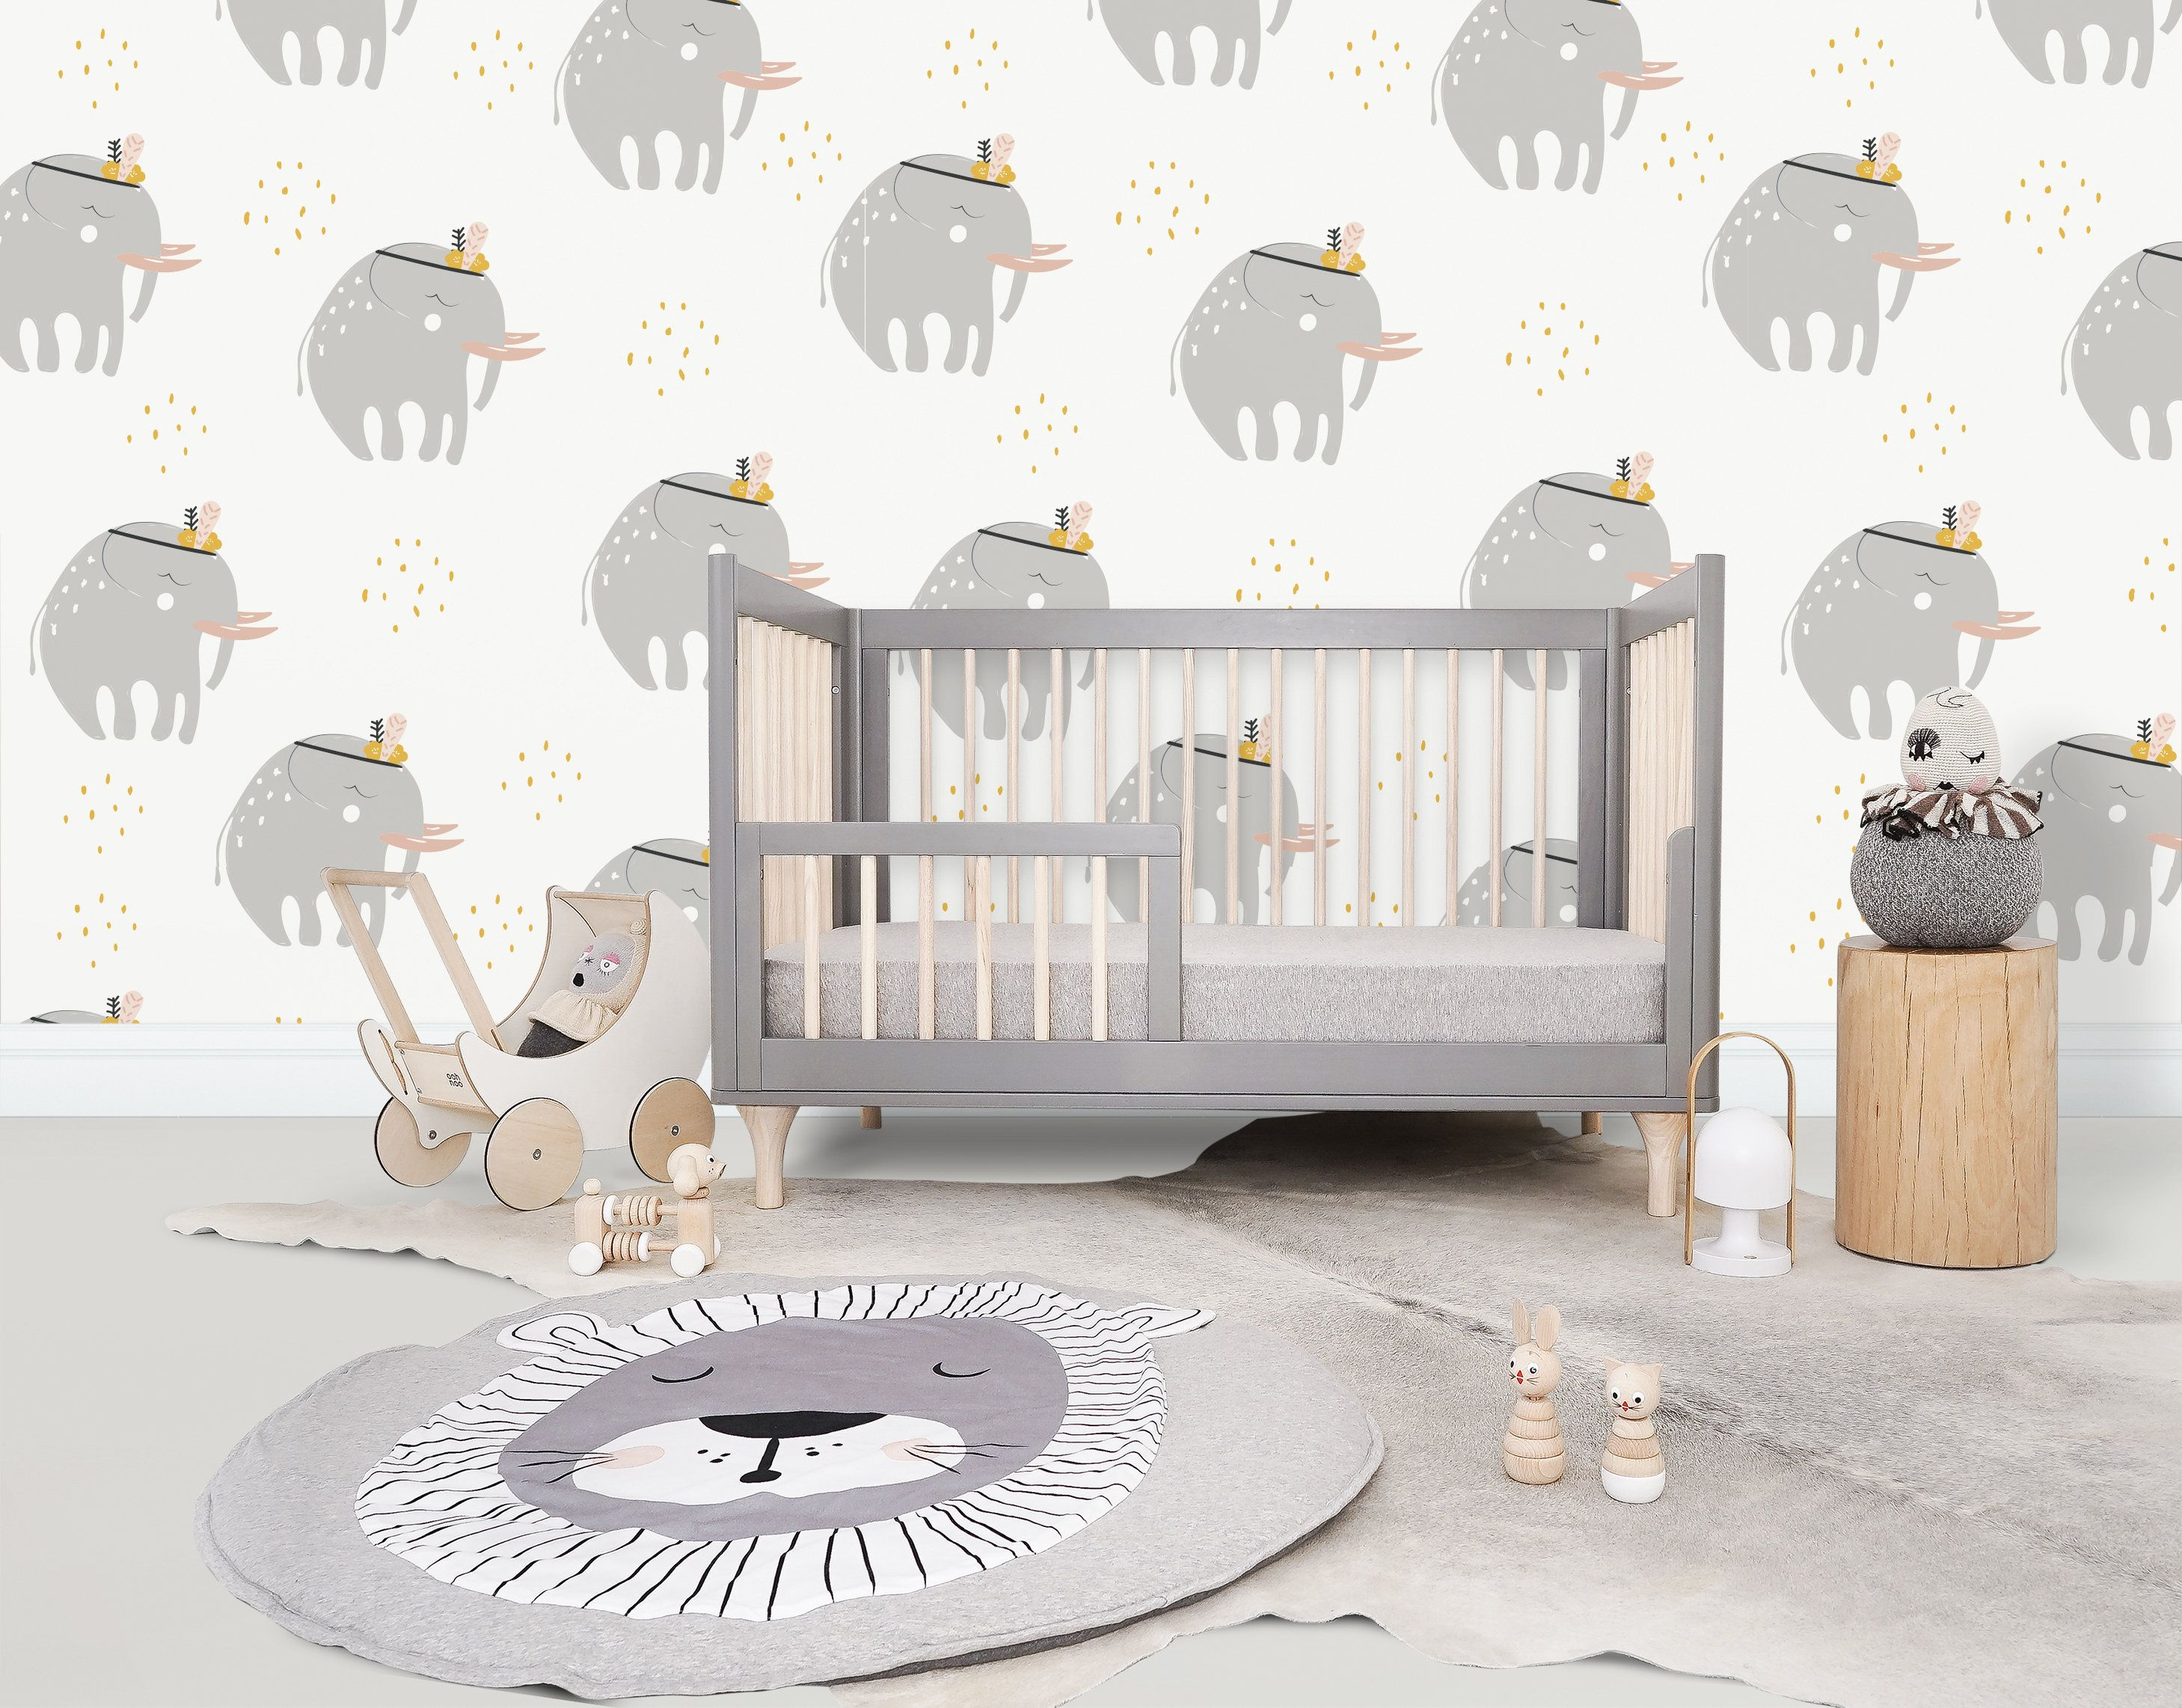 High Quality Repositionable Removable Self Adhesive Wallpaper Nursery Elephant Pattern Nursery Wallpaper Vinyl Wallpaper Self Adhesive Wallpaper